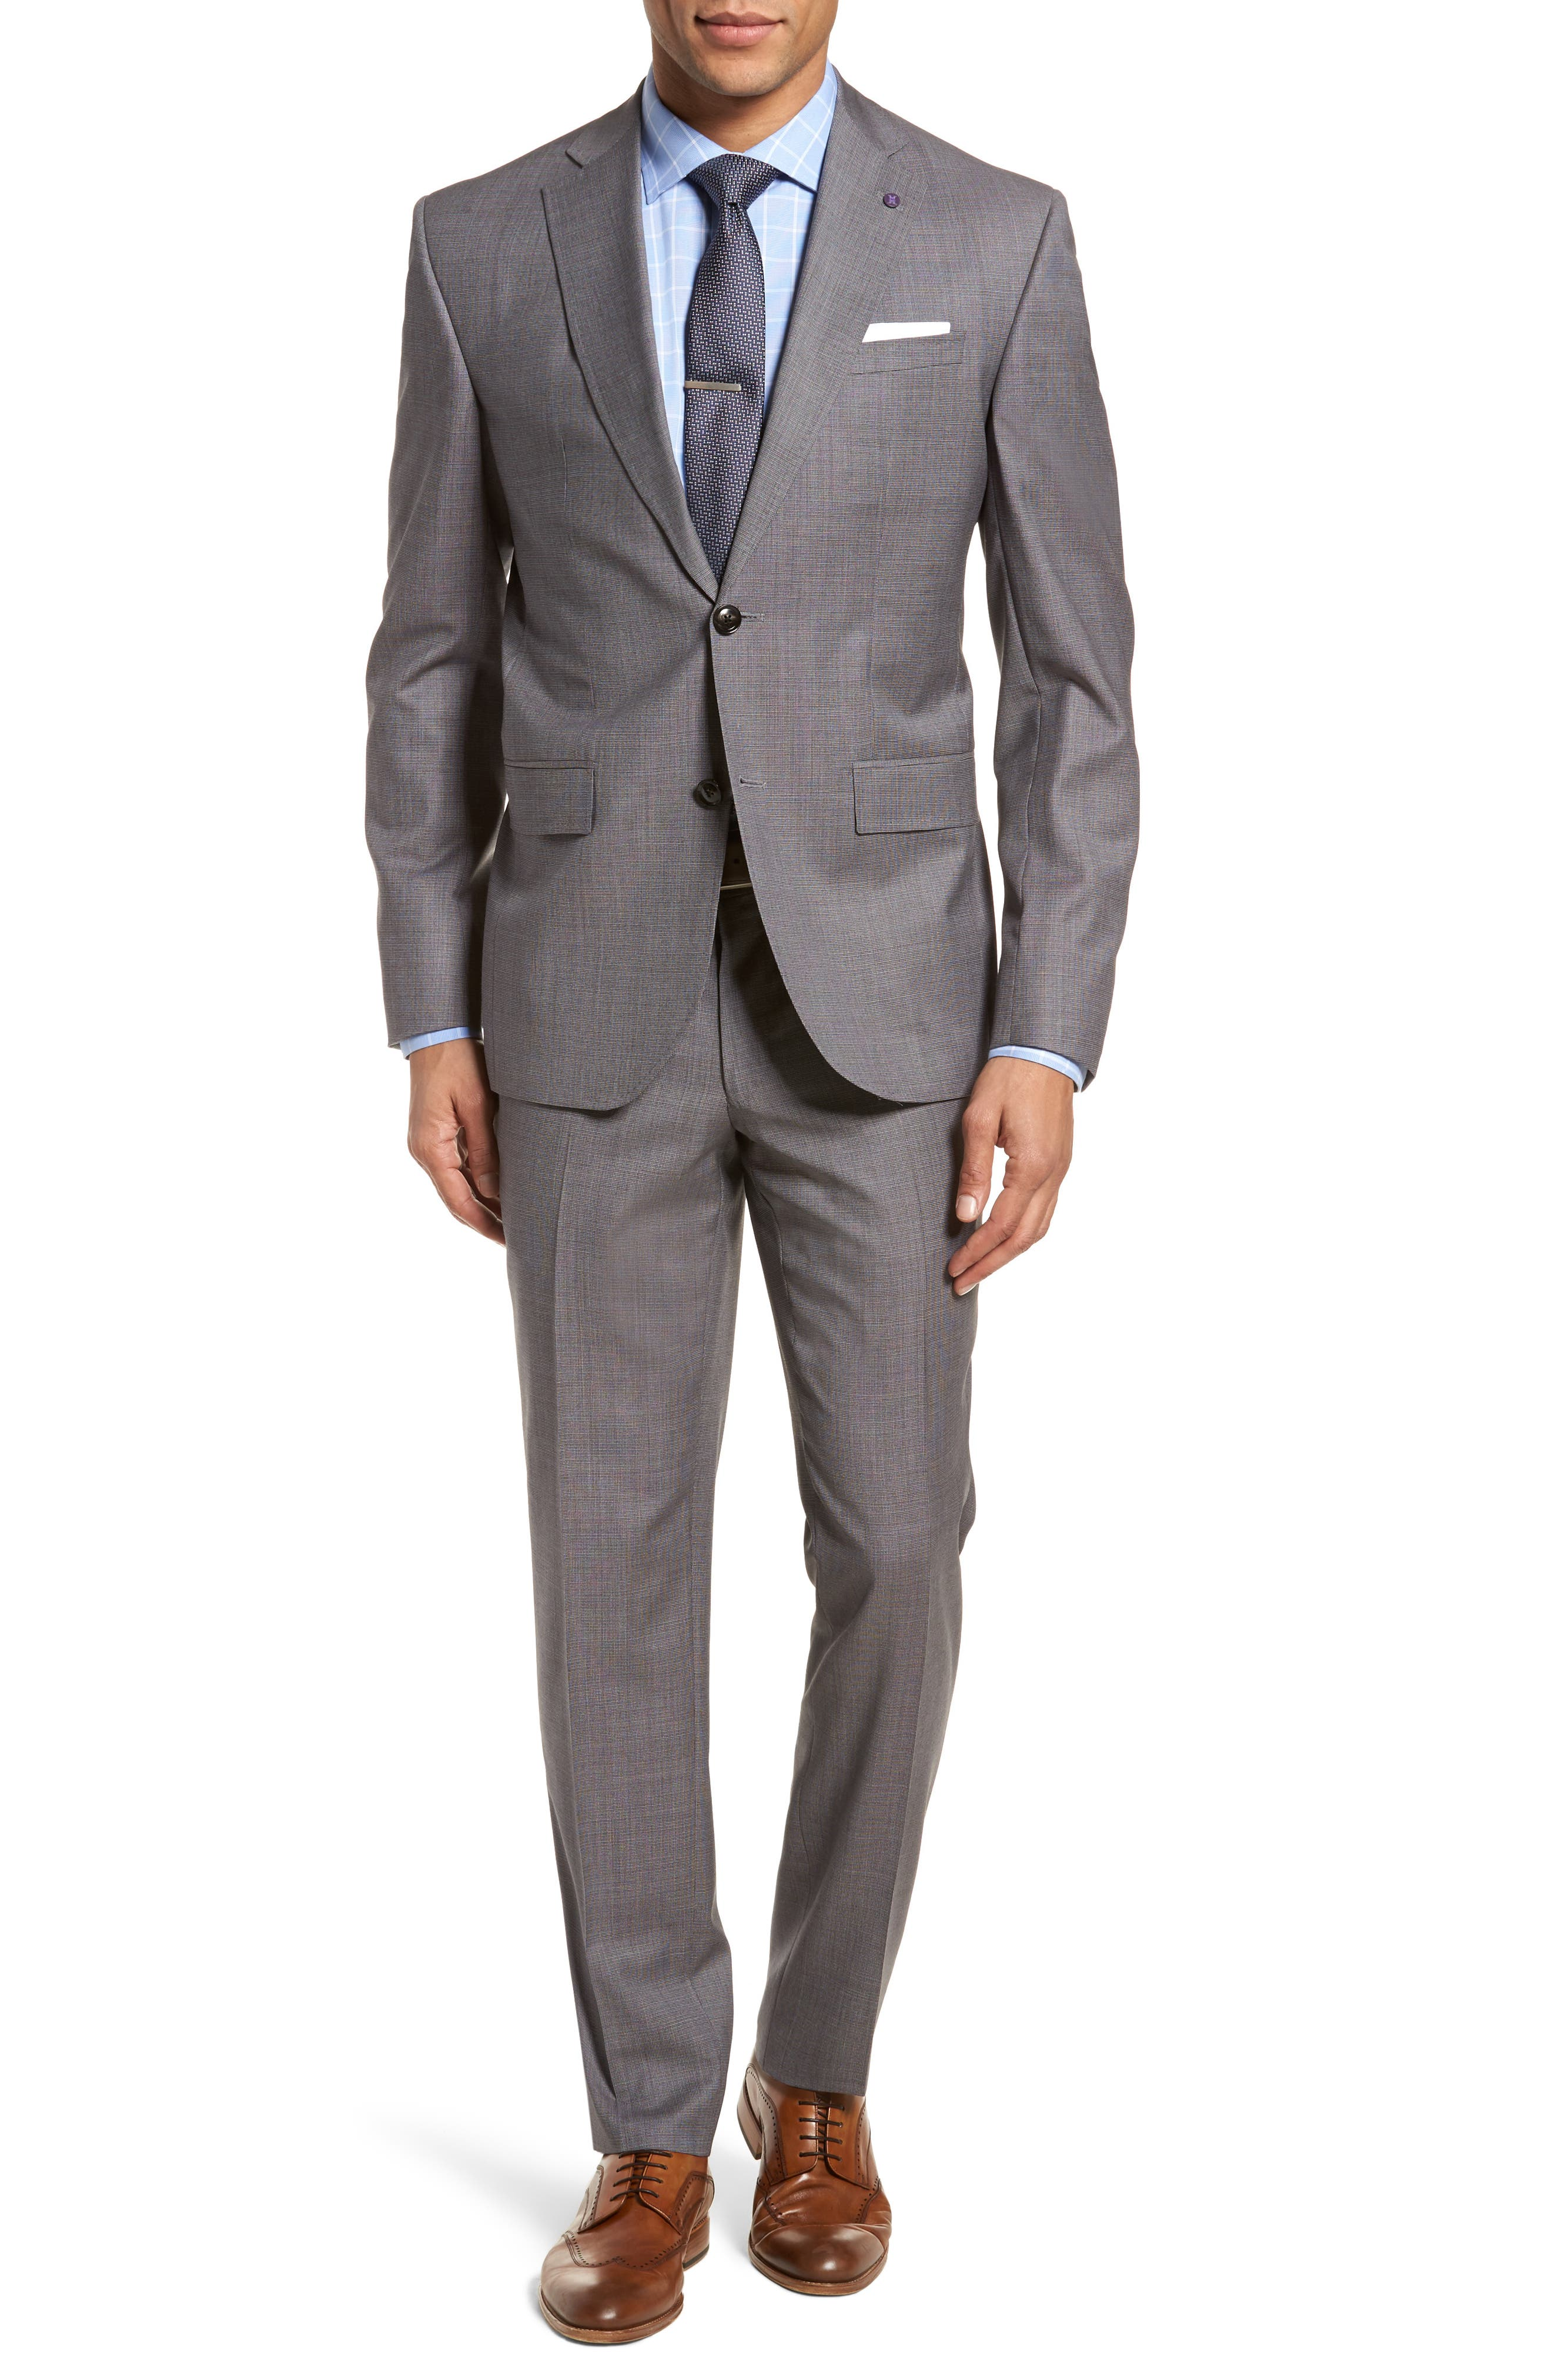 Roger Extra Slim Fit Solid Wool Suit,                             Main thumbnail 1, color,                             Taupe